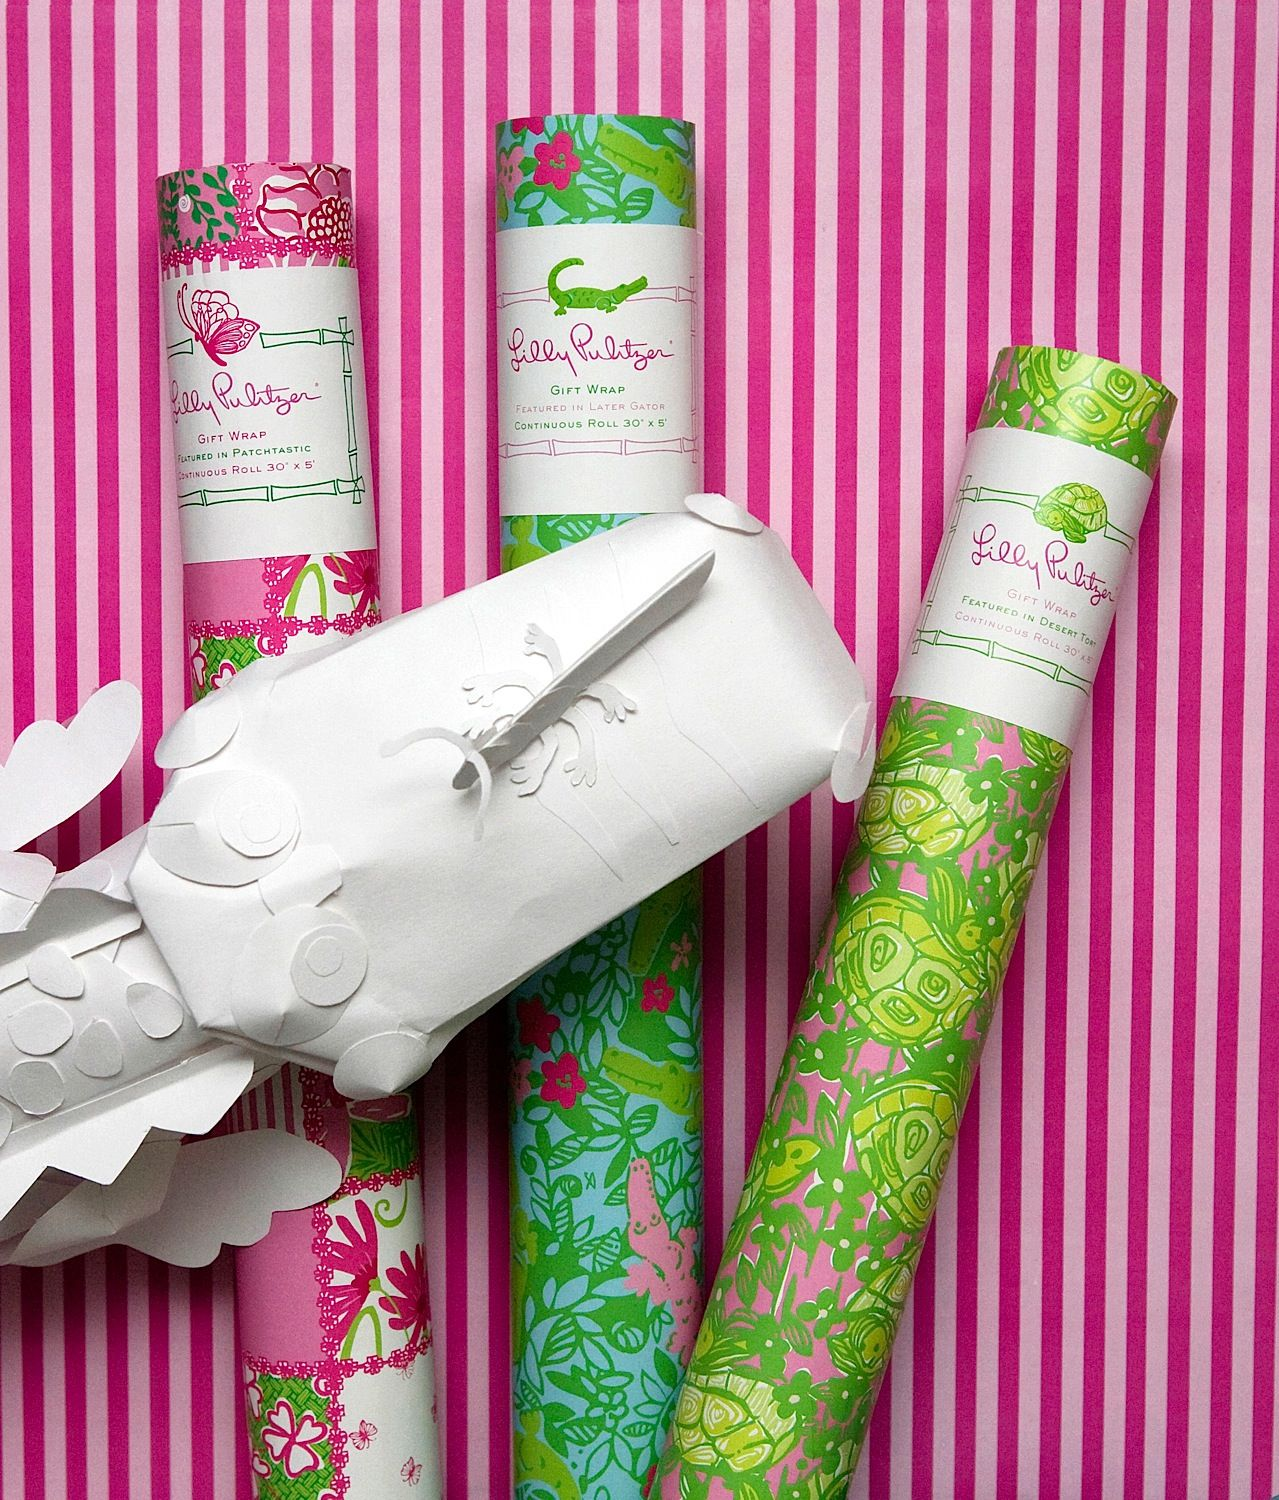 Lilly Pulitzer Gift Wrap-great for the girls in your life ...